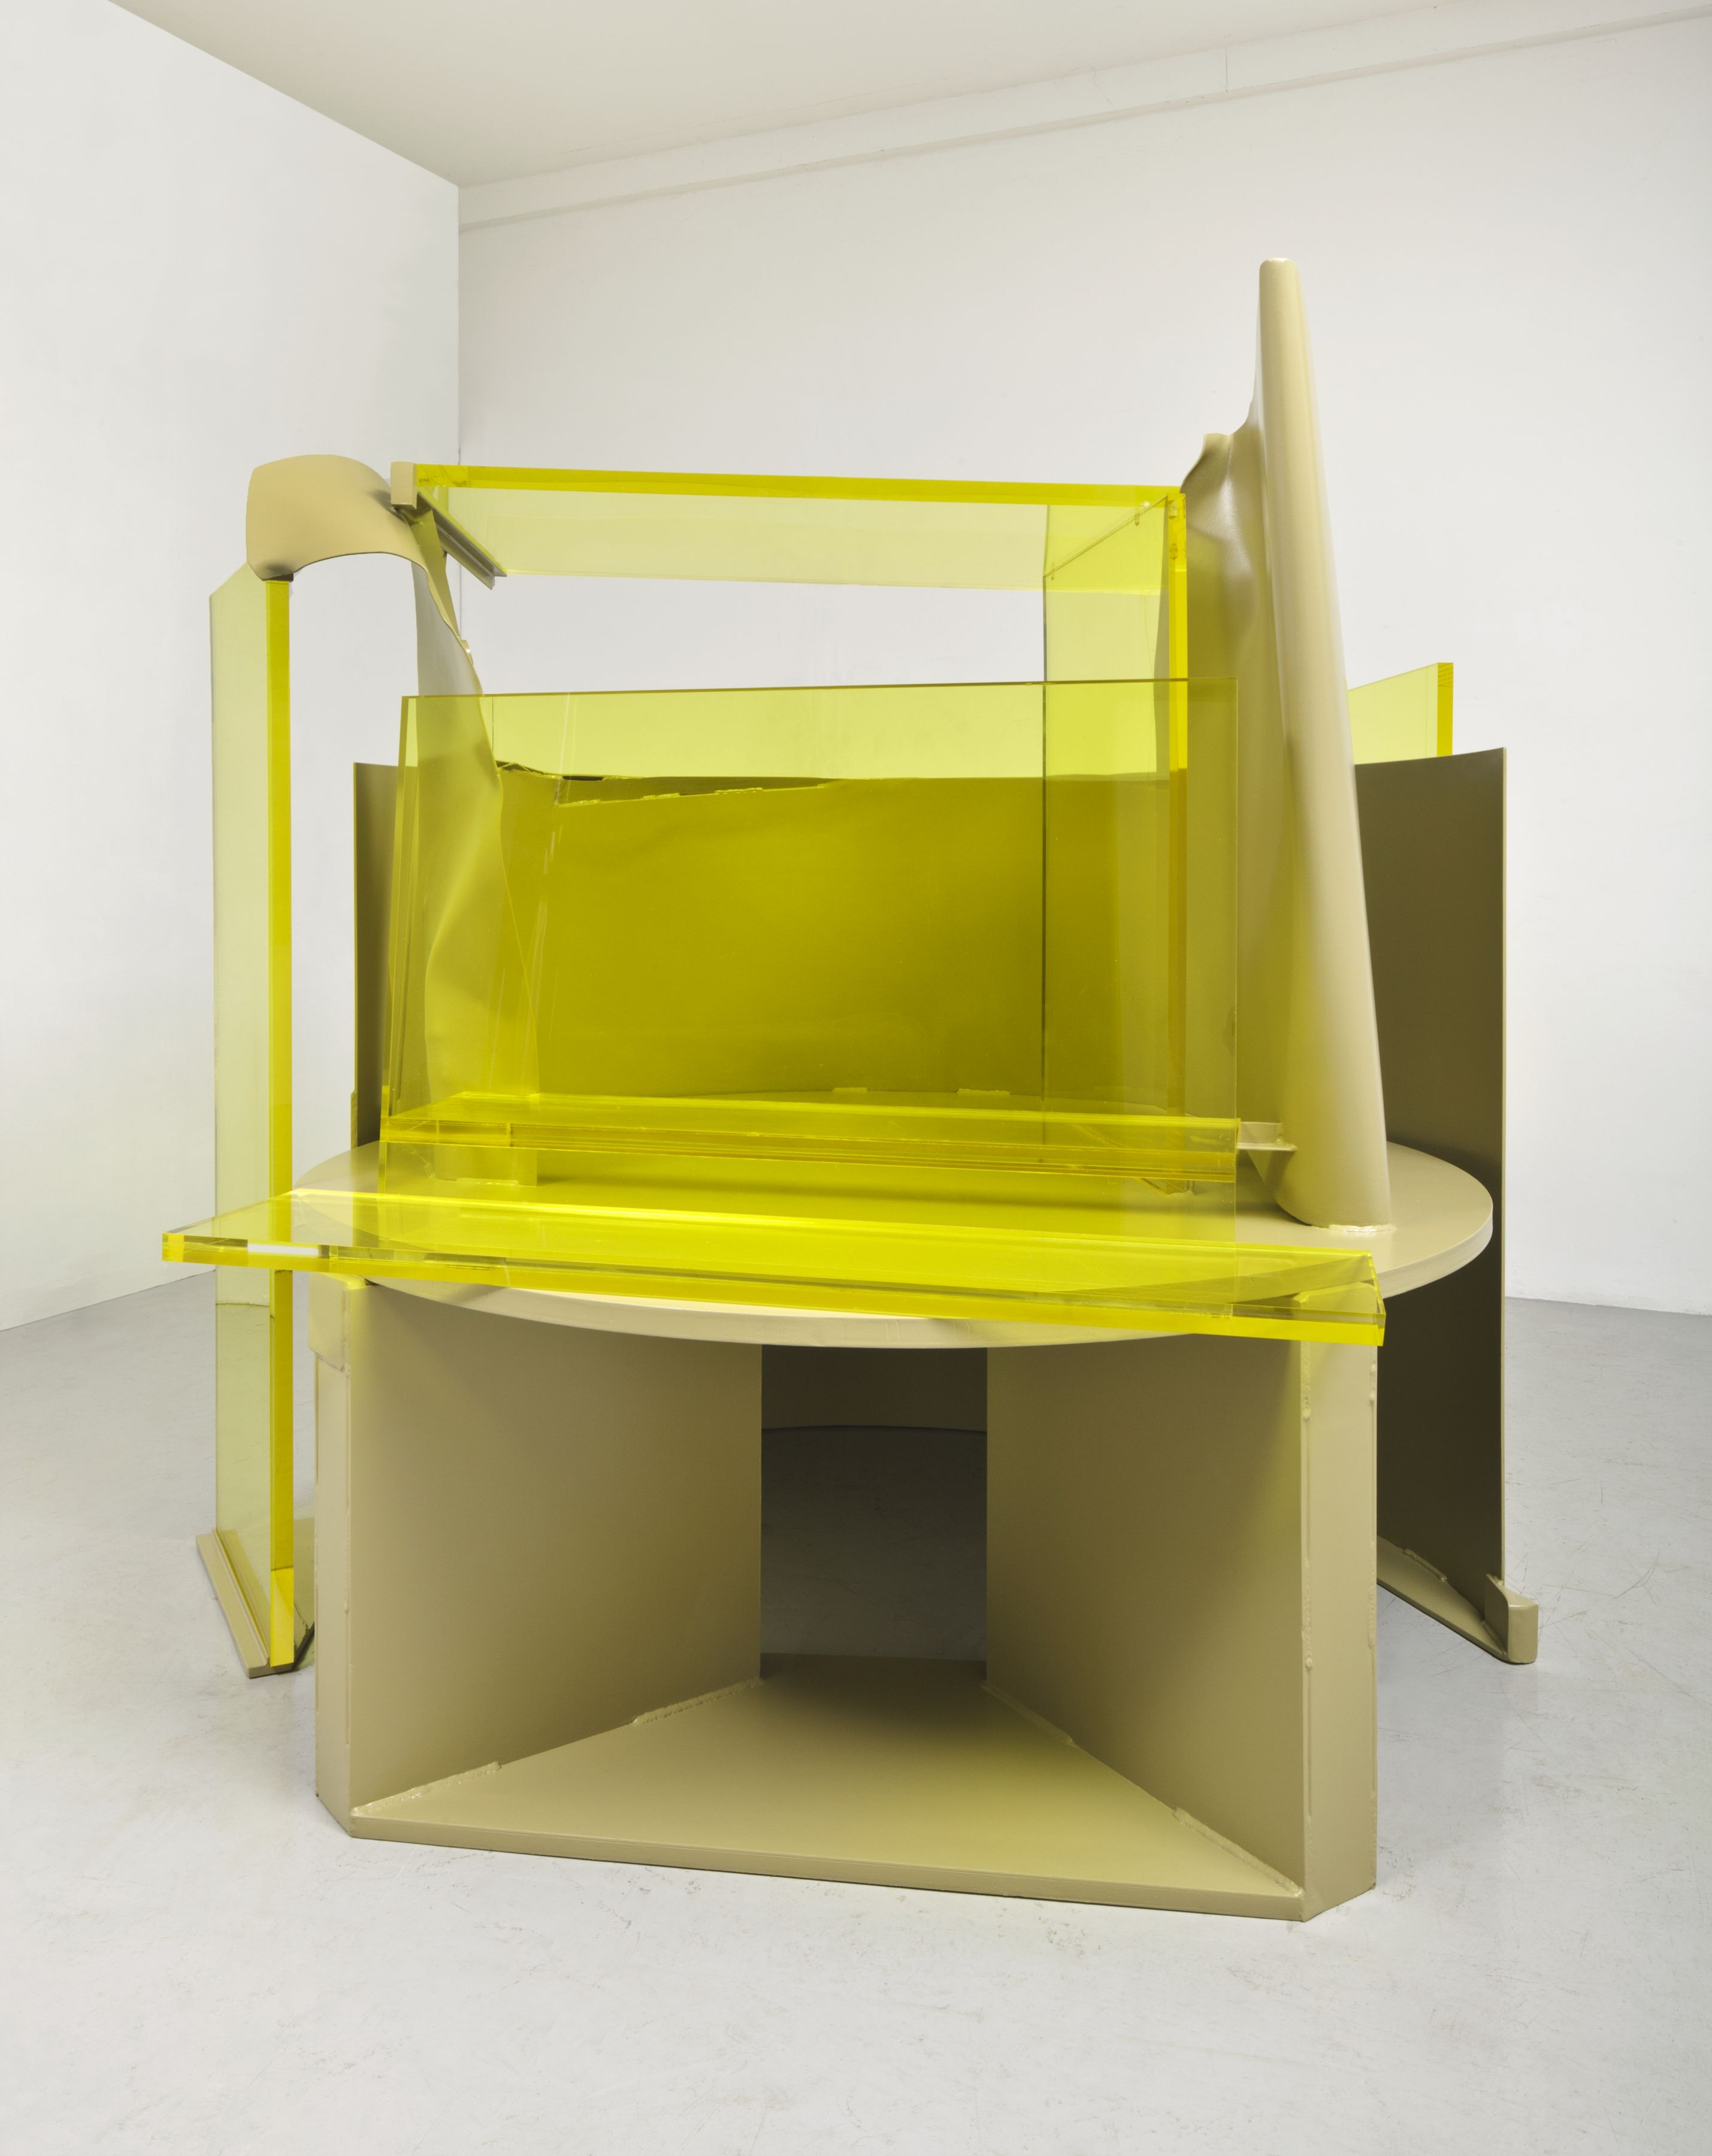 ANTHONY CARO Autumn Rhapsody